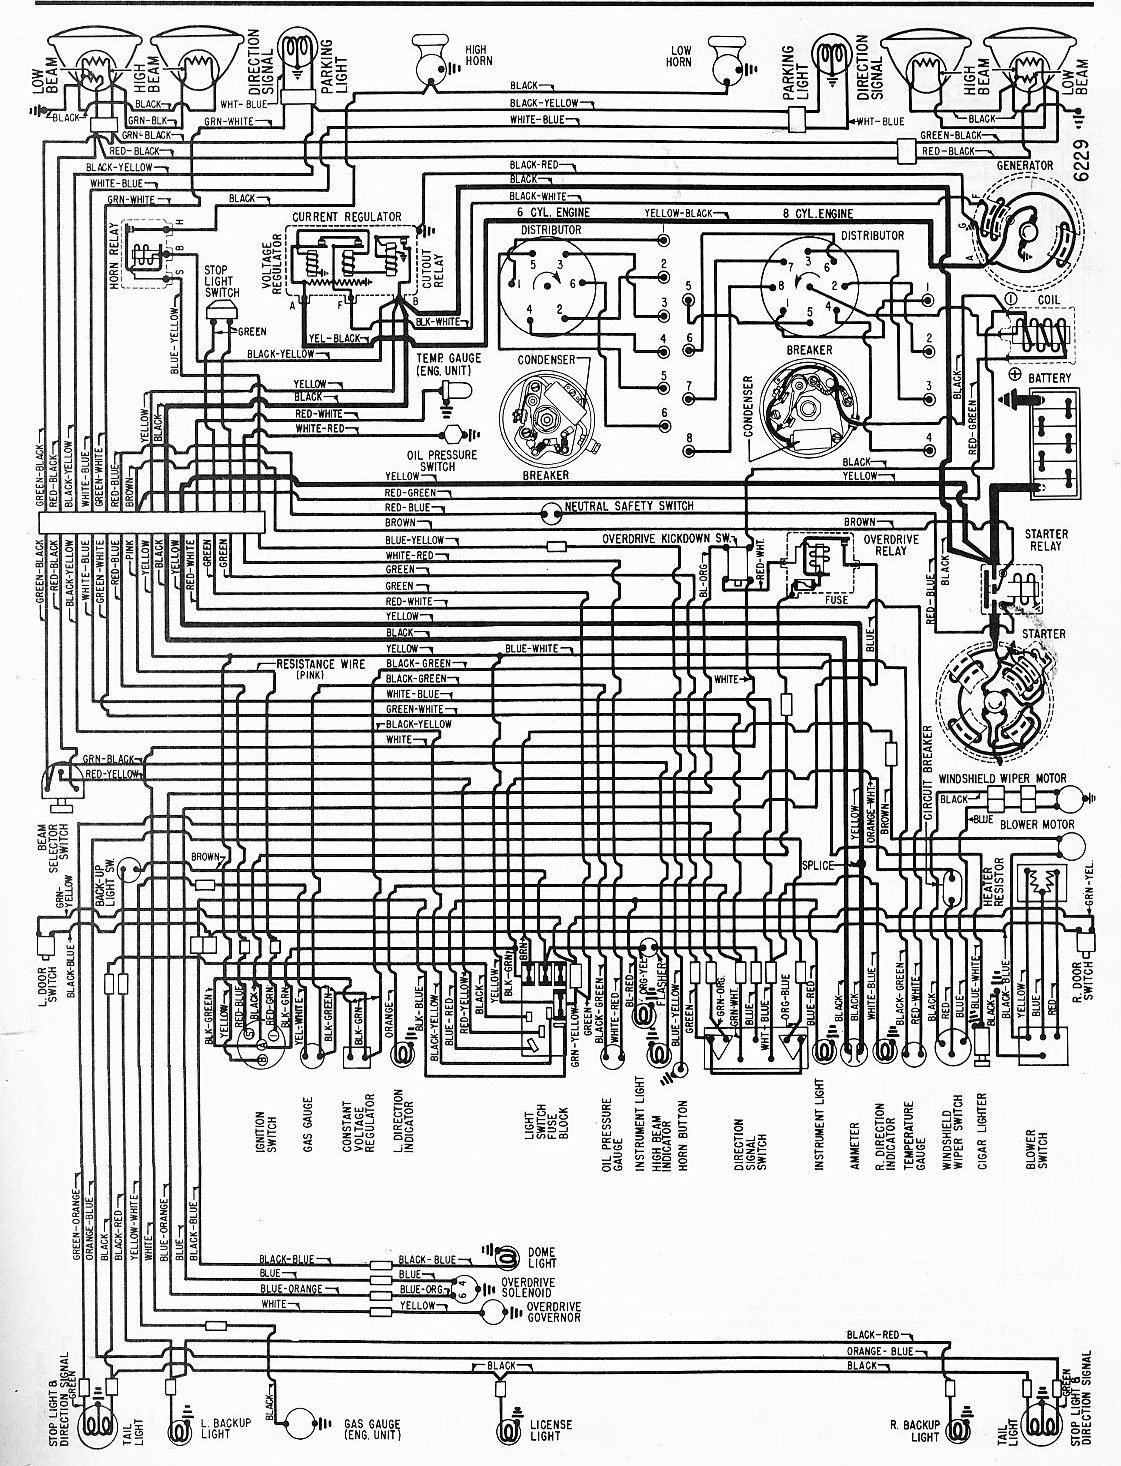 1966 Ranchero Fuse Box Guide And Troubleshooting Of Wiring Diagram Ford F100 1972 Get Free Image About 1965 1962